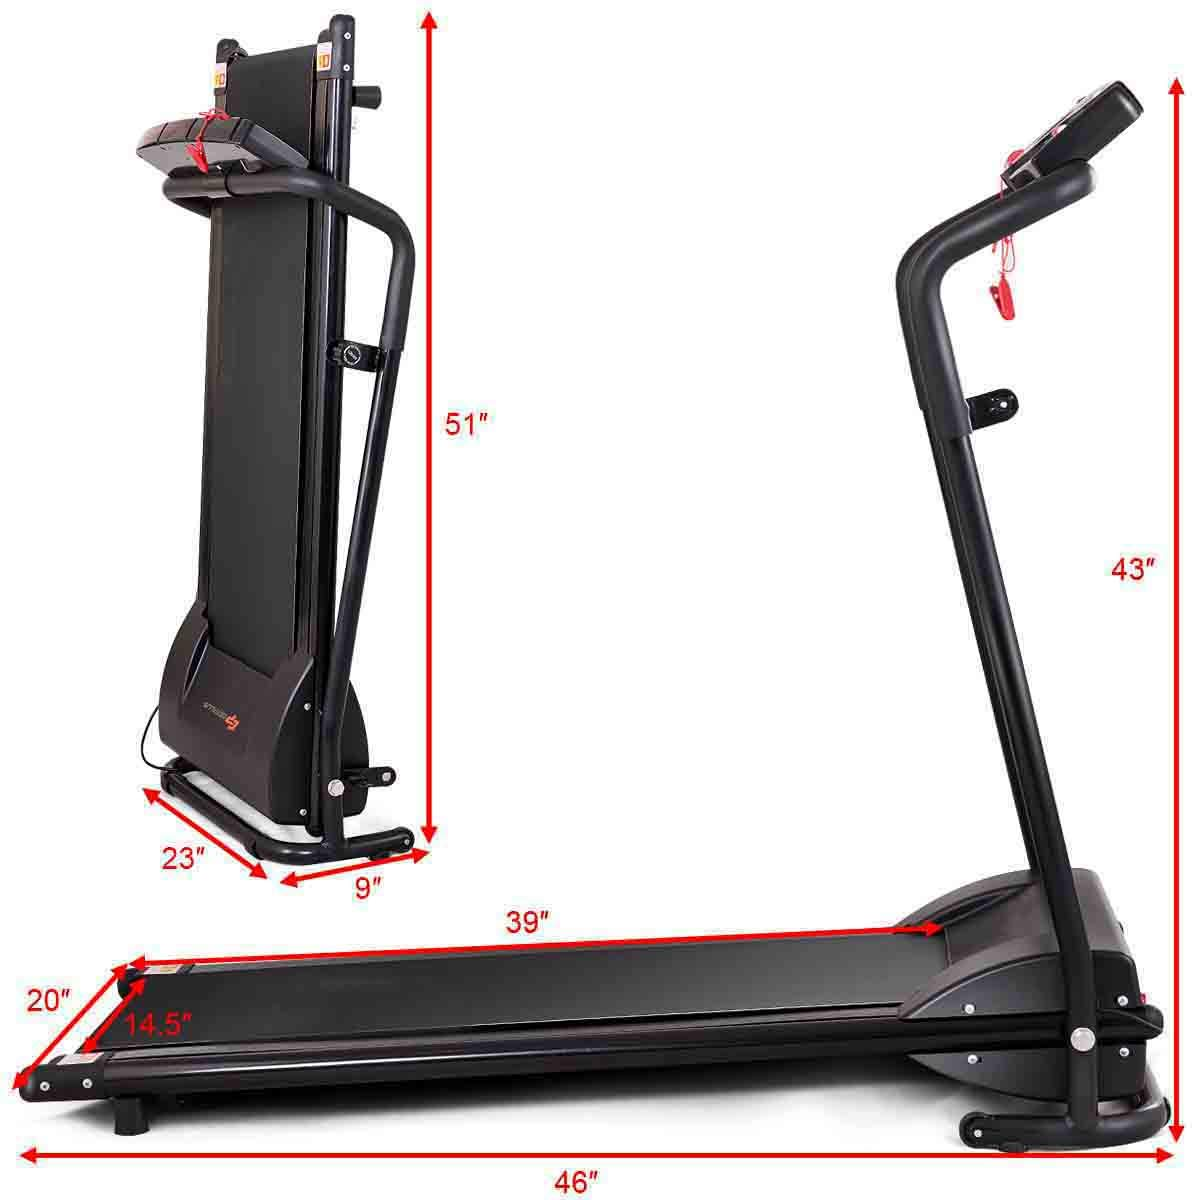 GYMAX Folding Electric Portable Treadmill Low Noise Jogging Walking Running Machine Exercise Treadmill w/Safety Key by GYMAX (Image #7)